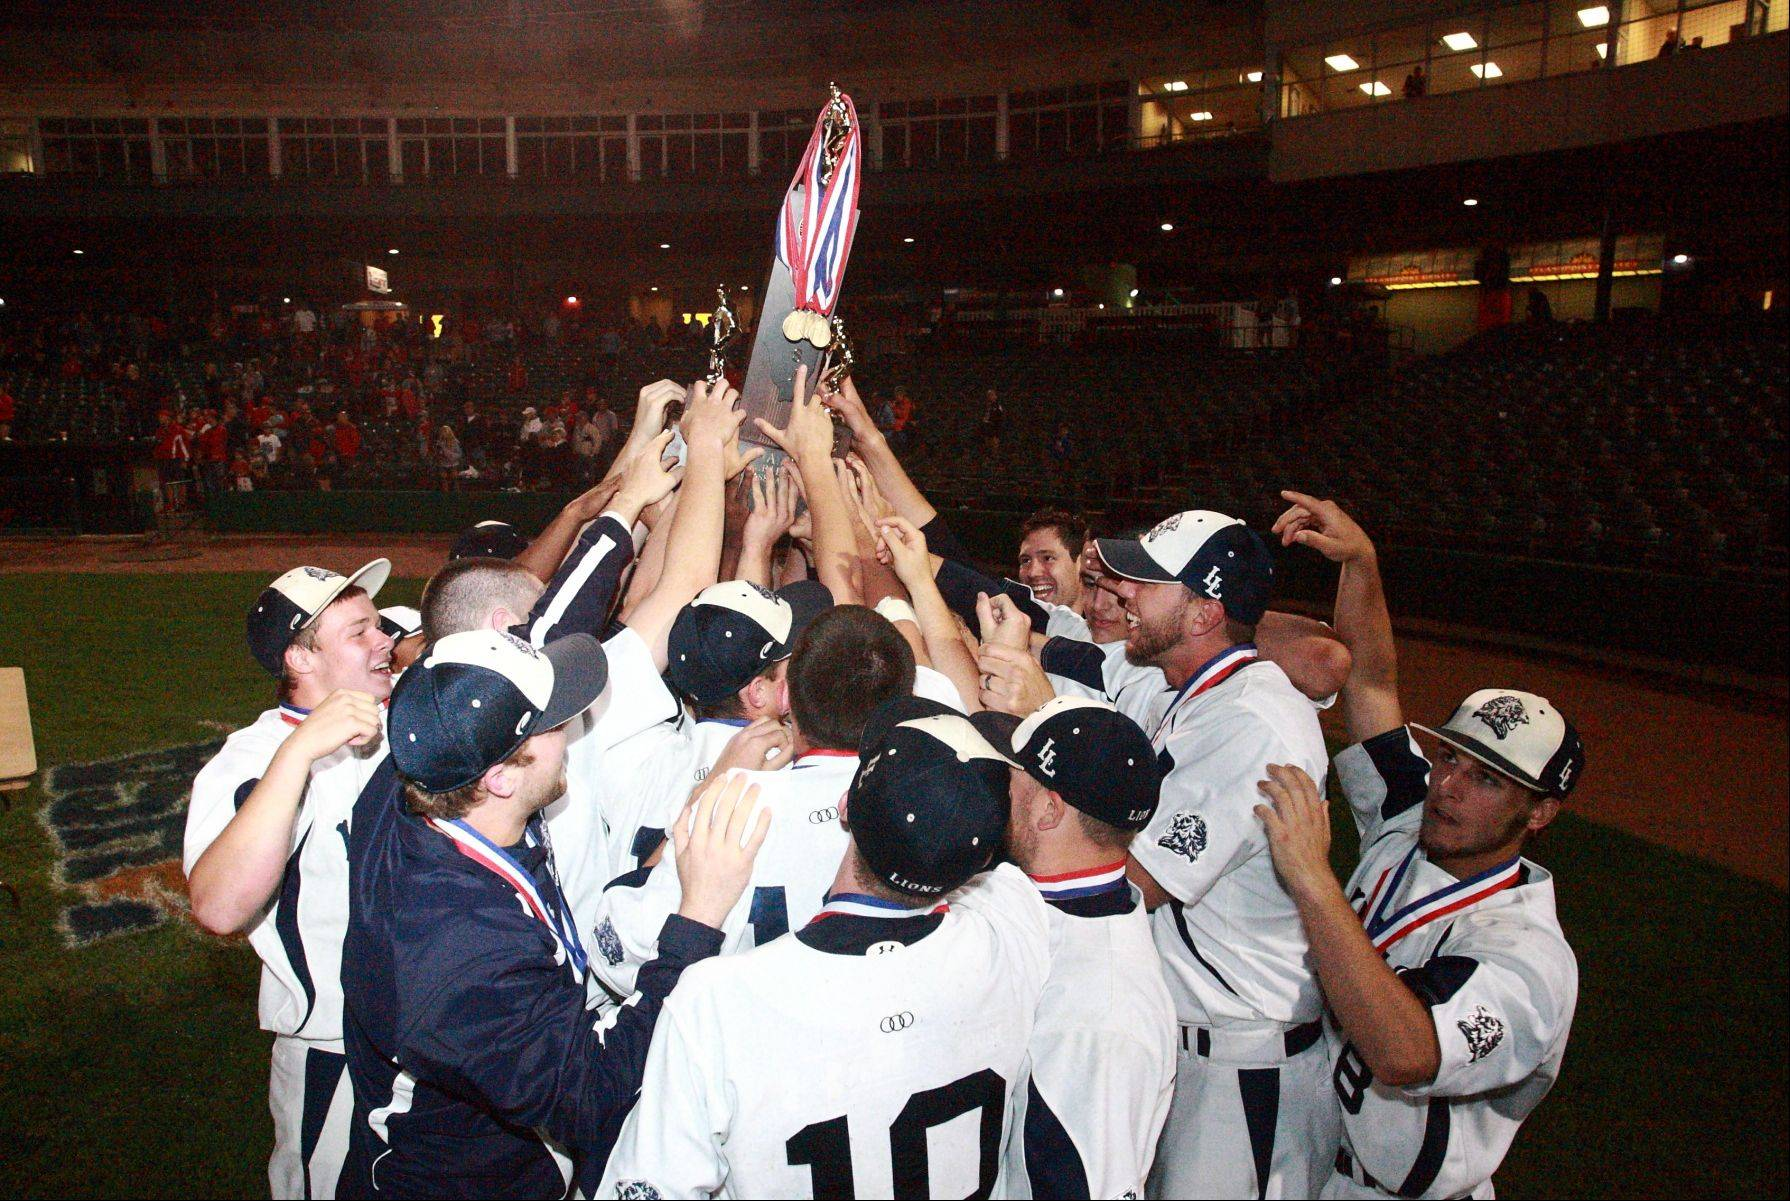 June 1, 2013 - Peoria, IL - Members of the 2013 Lions baseball team celebrate their new state baseball trophy at the IHSA state baseball tournament Saturday evening. Lisle defeated Pleasant Plains 10-1 to win the Class 2A title. [Photo: